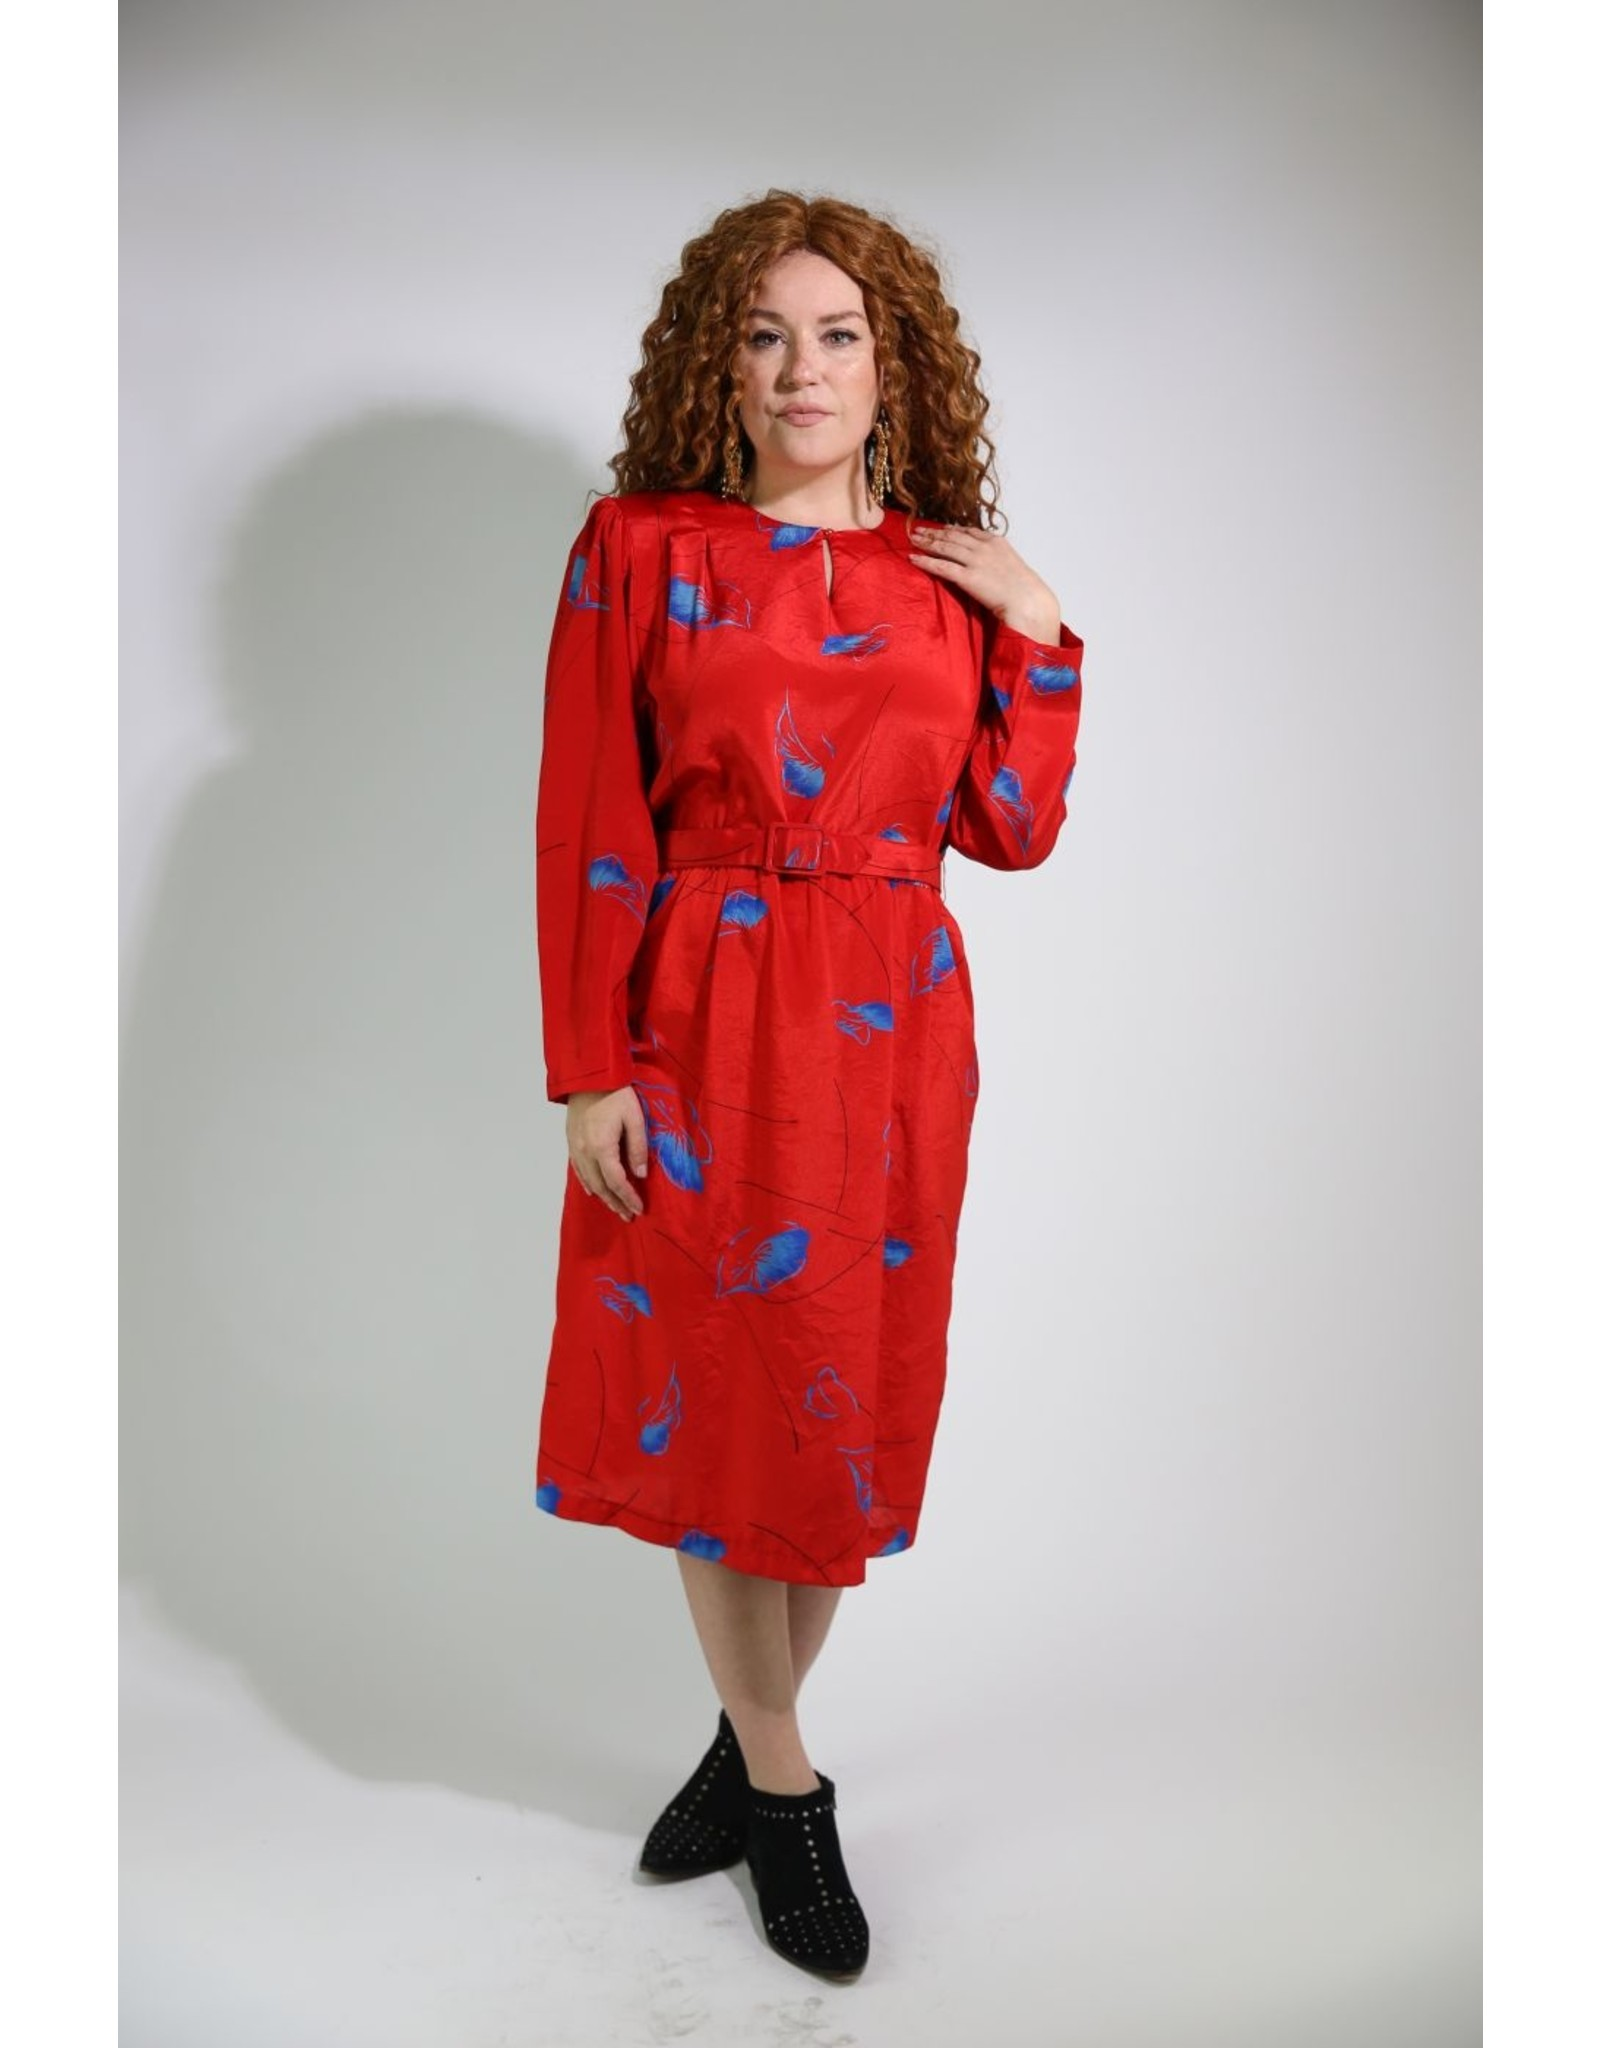 1980's Red &Blue Casual Dress